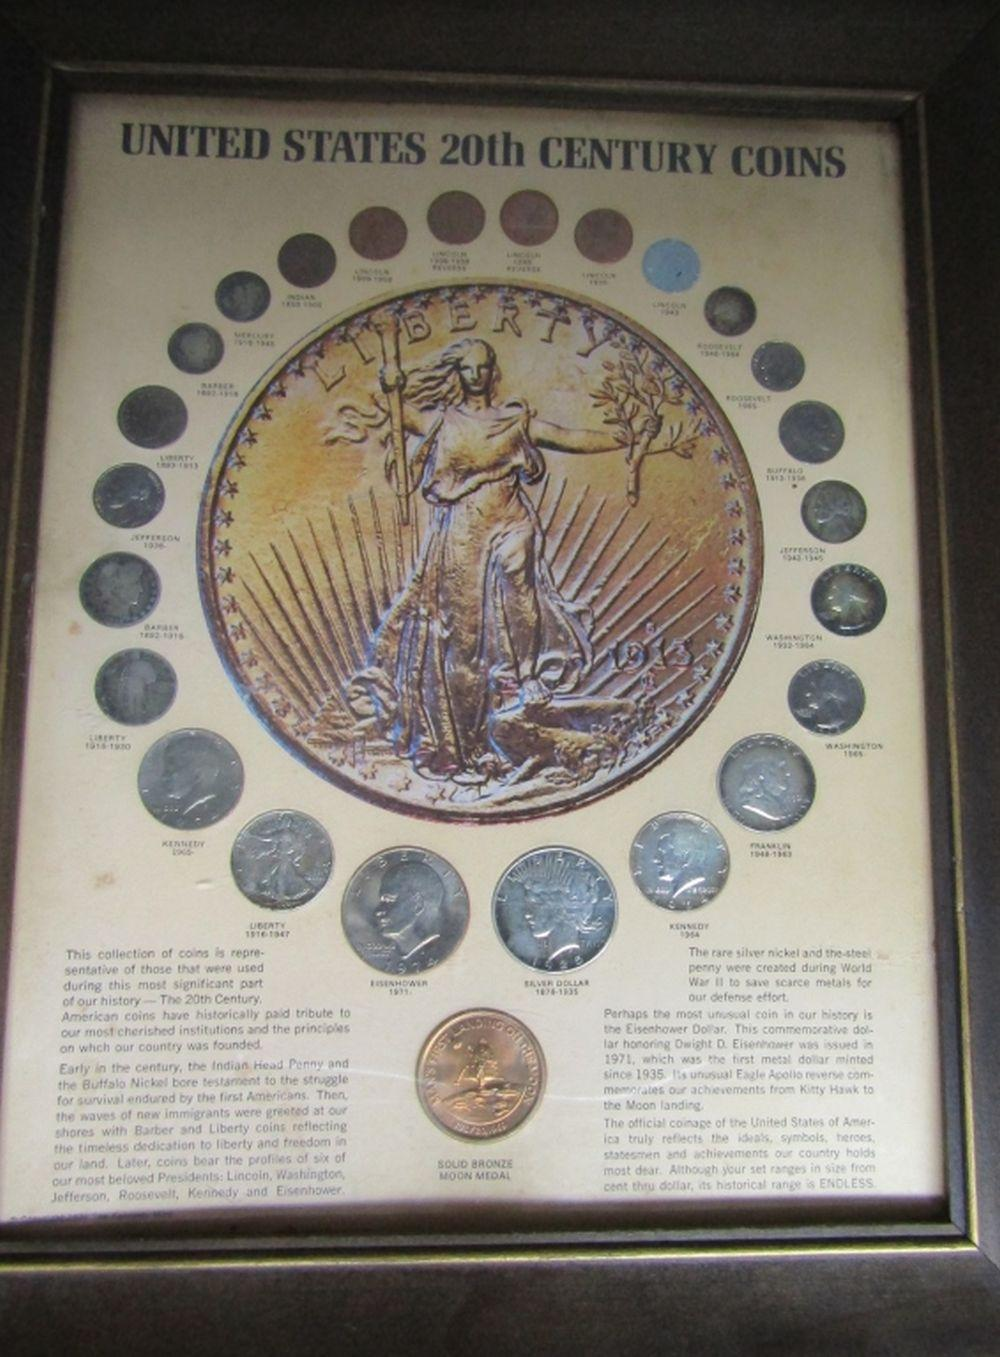 U.S. 20th CENTURY COINS in FRAME